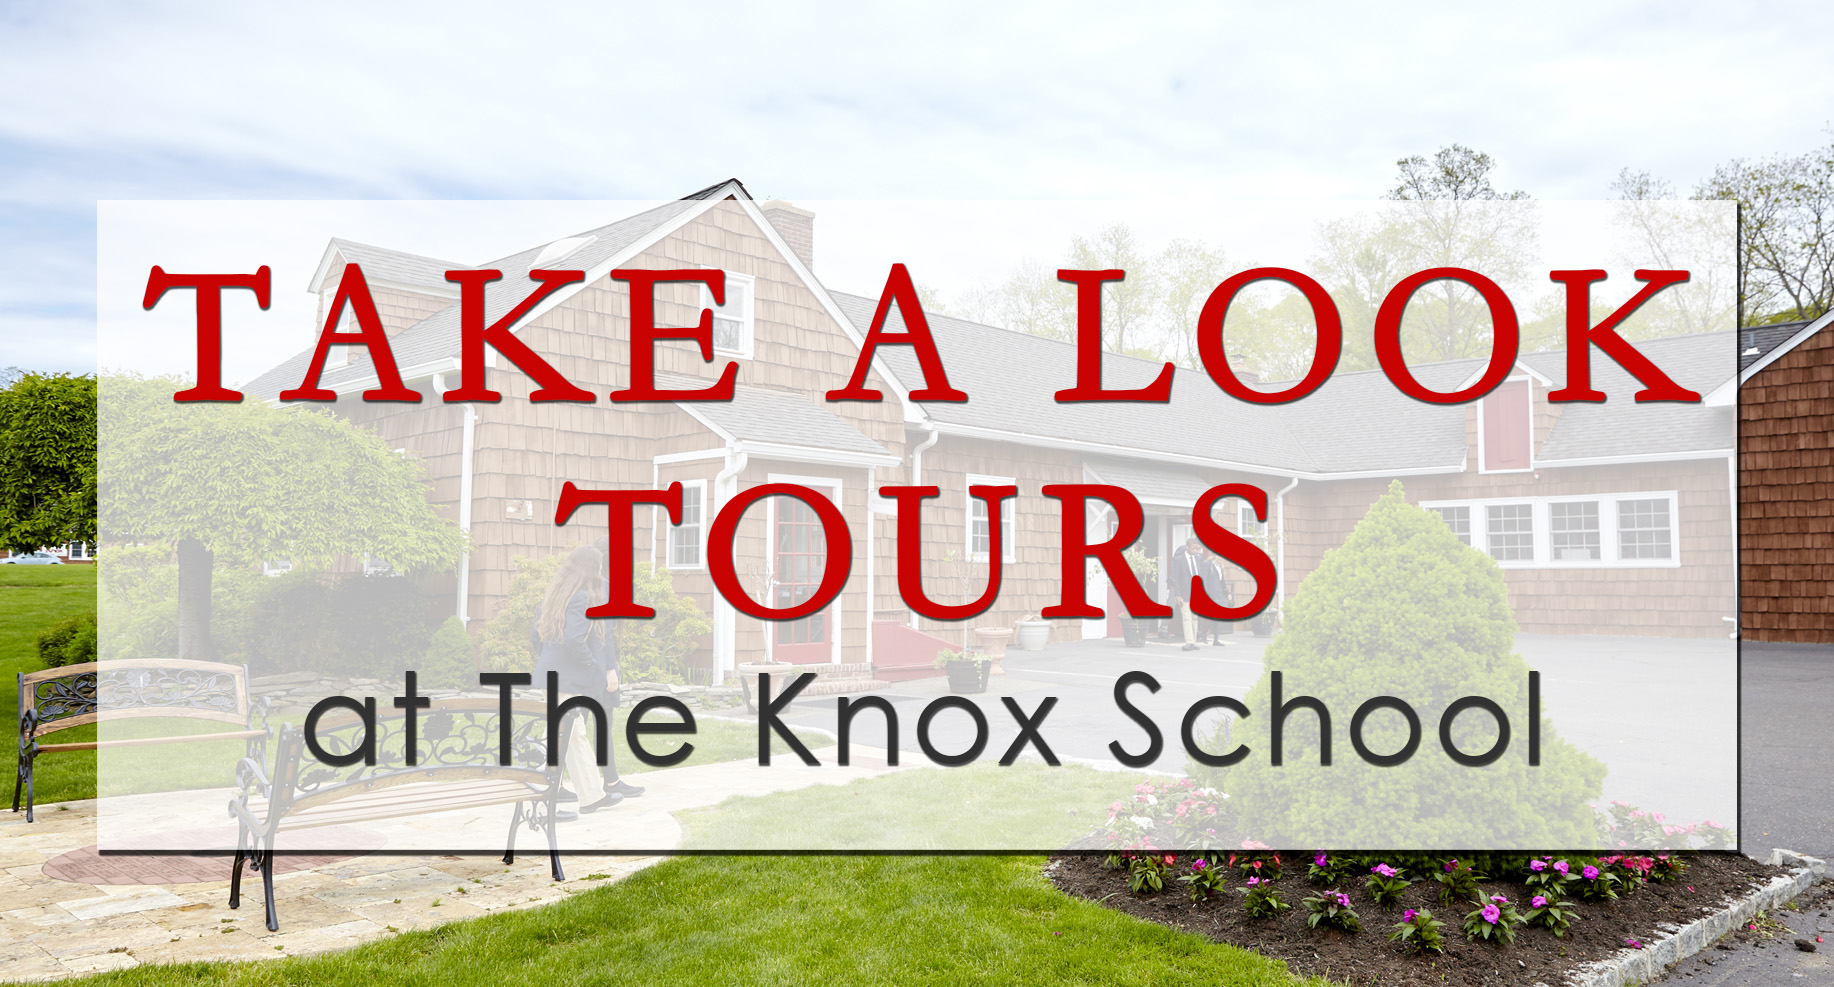 Web Banner with image and text- Take a Look Tours at The Knox School